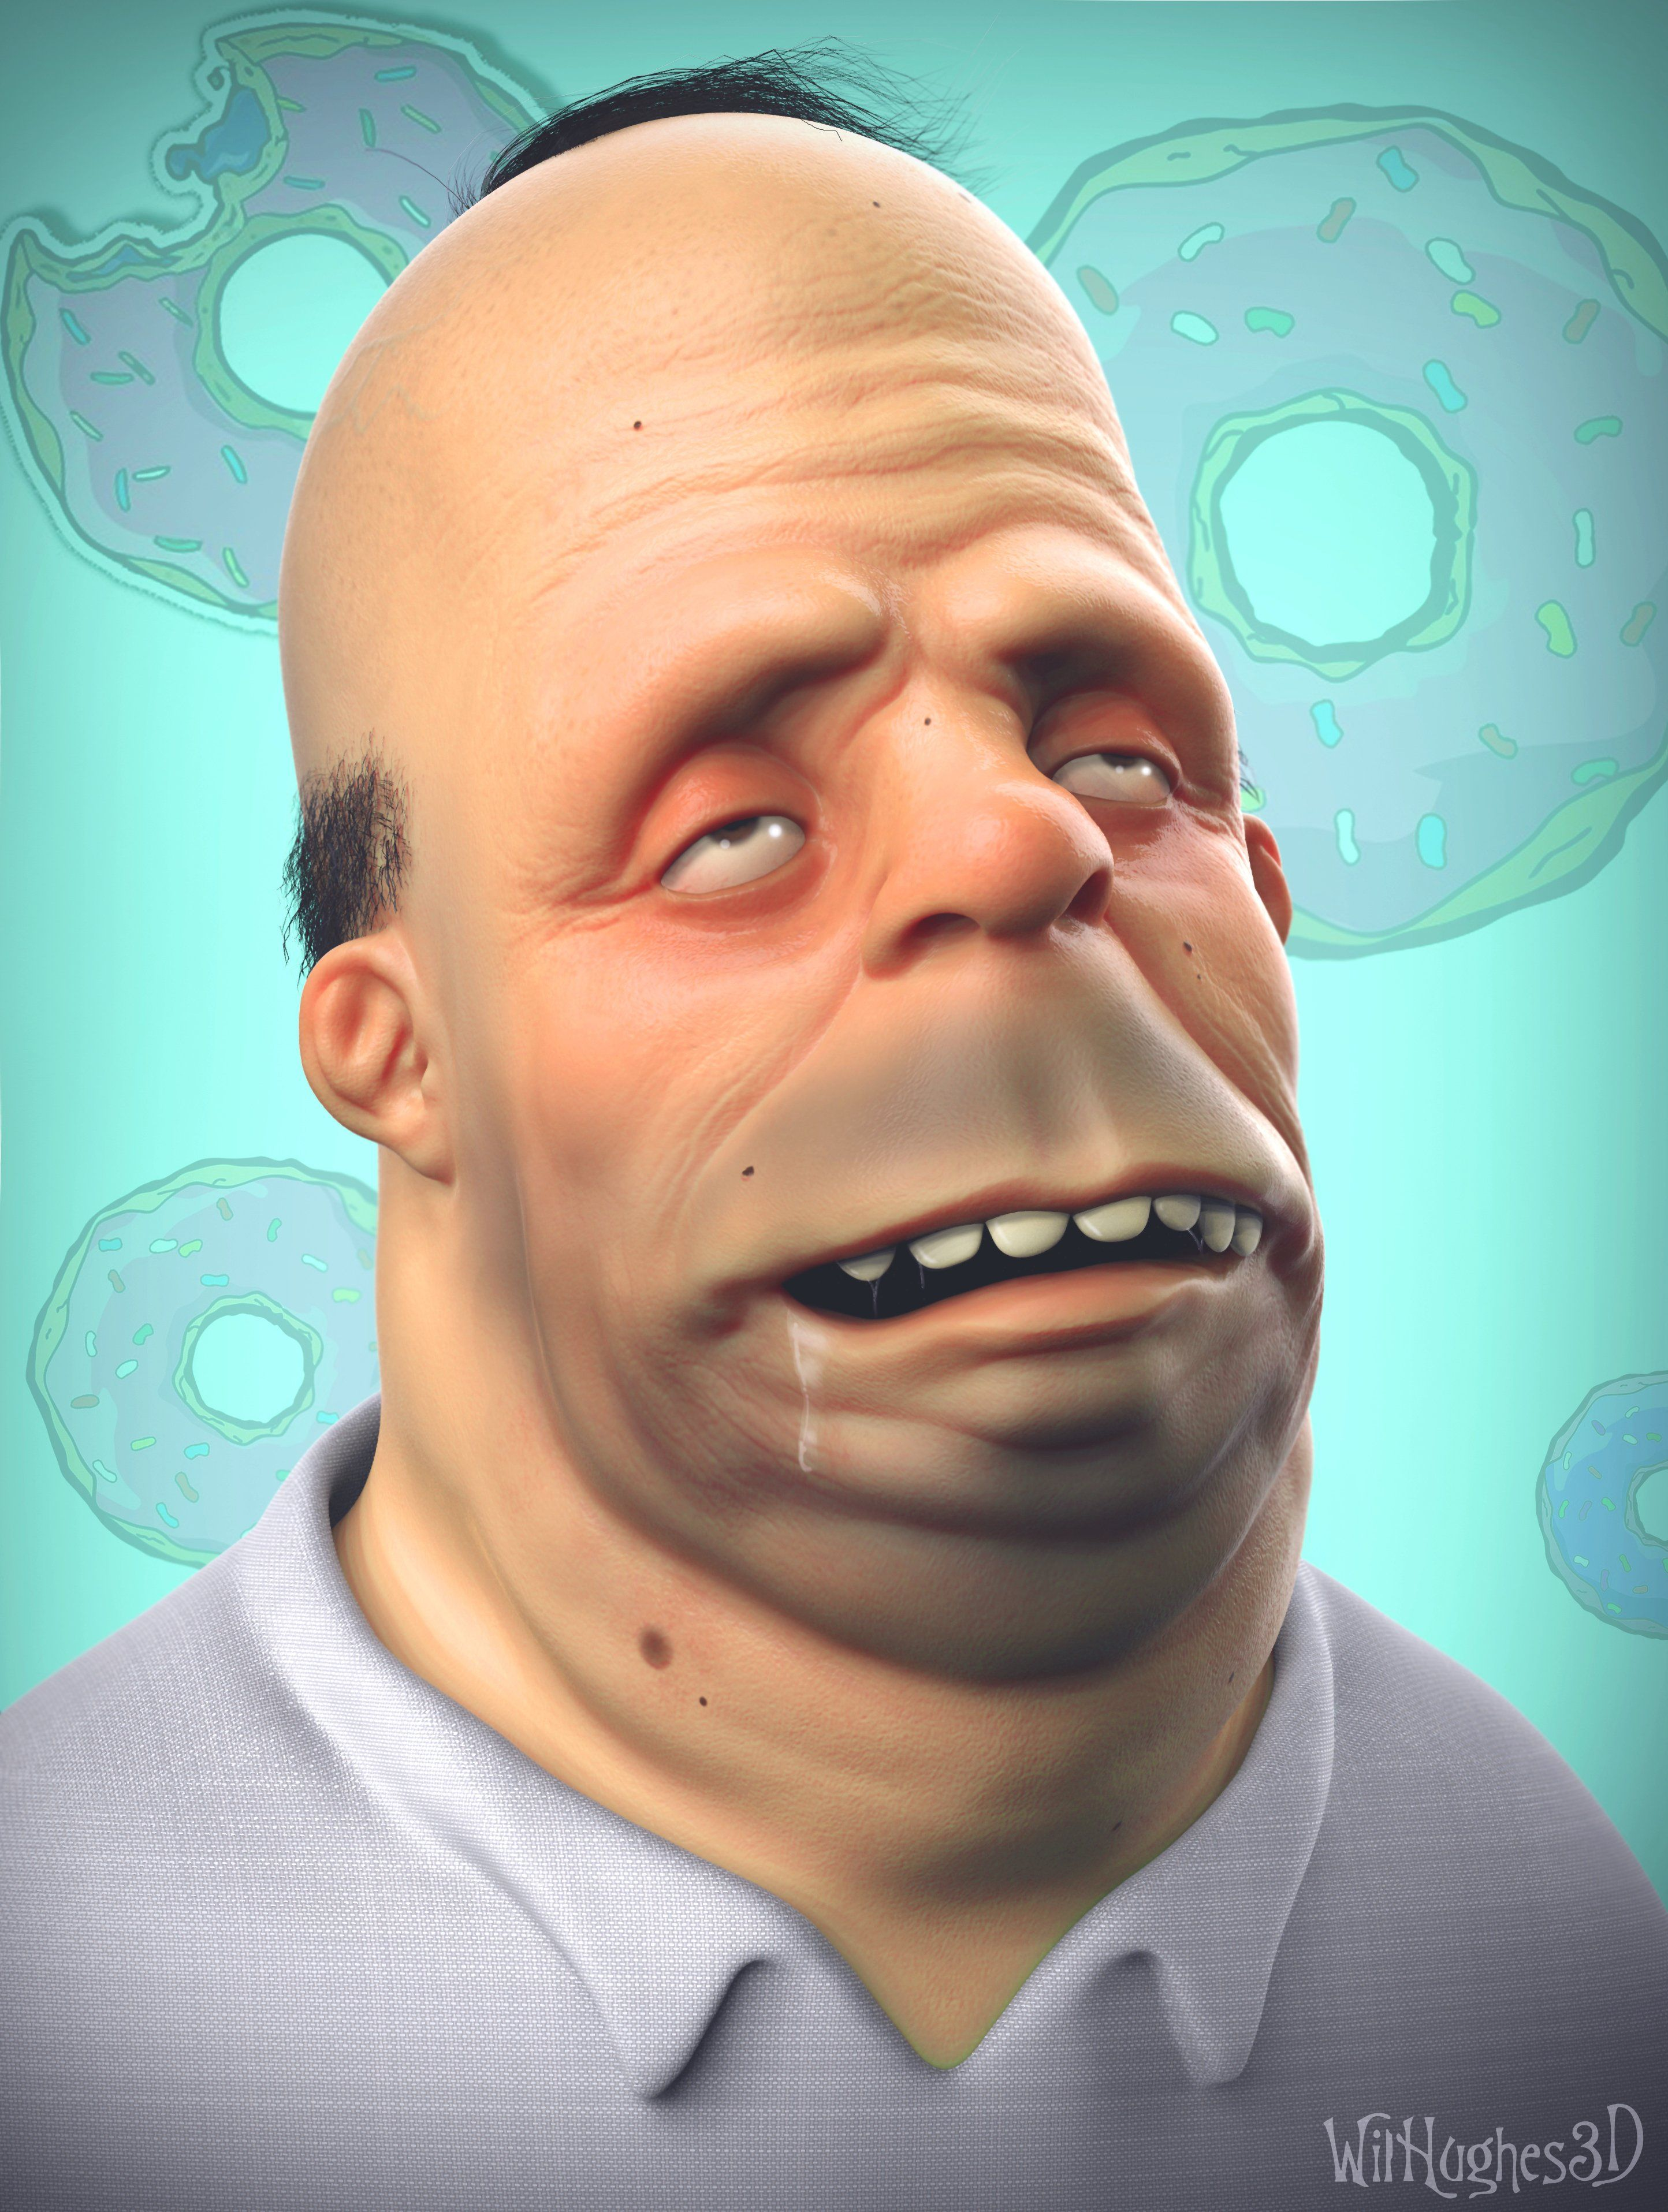 Homer Simpson Funny Face : homer, simpson, funny, Image, Result, Cartoon, Funny, Character,, Favorite, Realistic, Cartoons